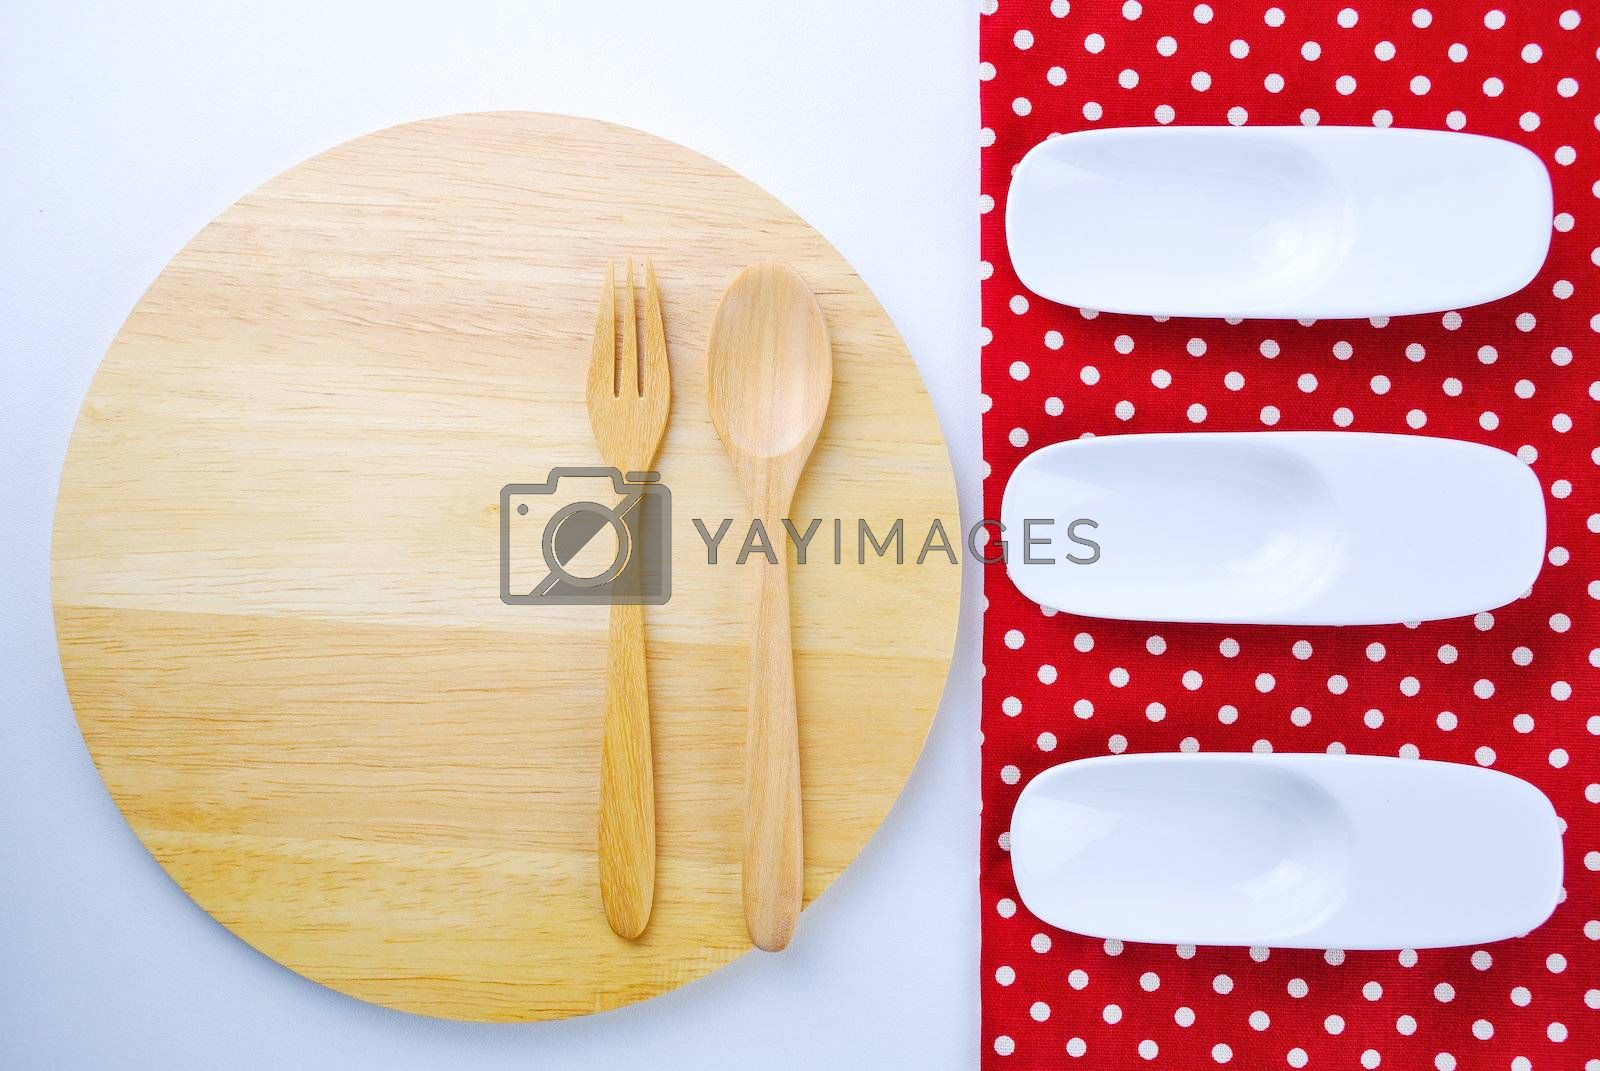 Royalty free image of Wooden plate, tablecloth, spoon, fork on table background  by teen00000